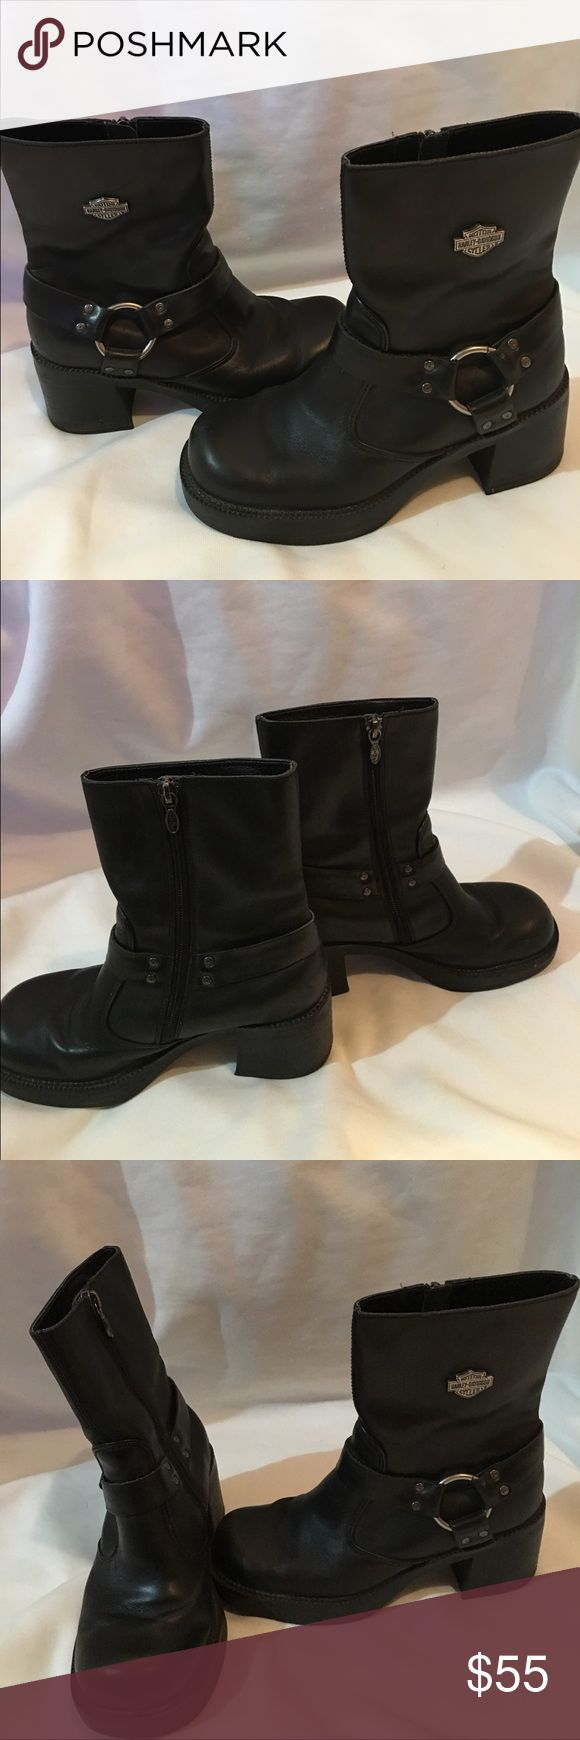 Harley Davidson Leatherboots In great condition Black leather Harley Boots Size 6 1/2 Harley-Davidson Shoes